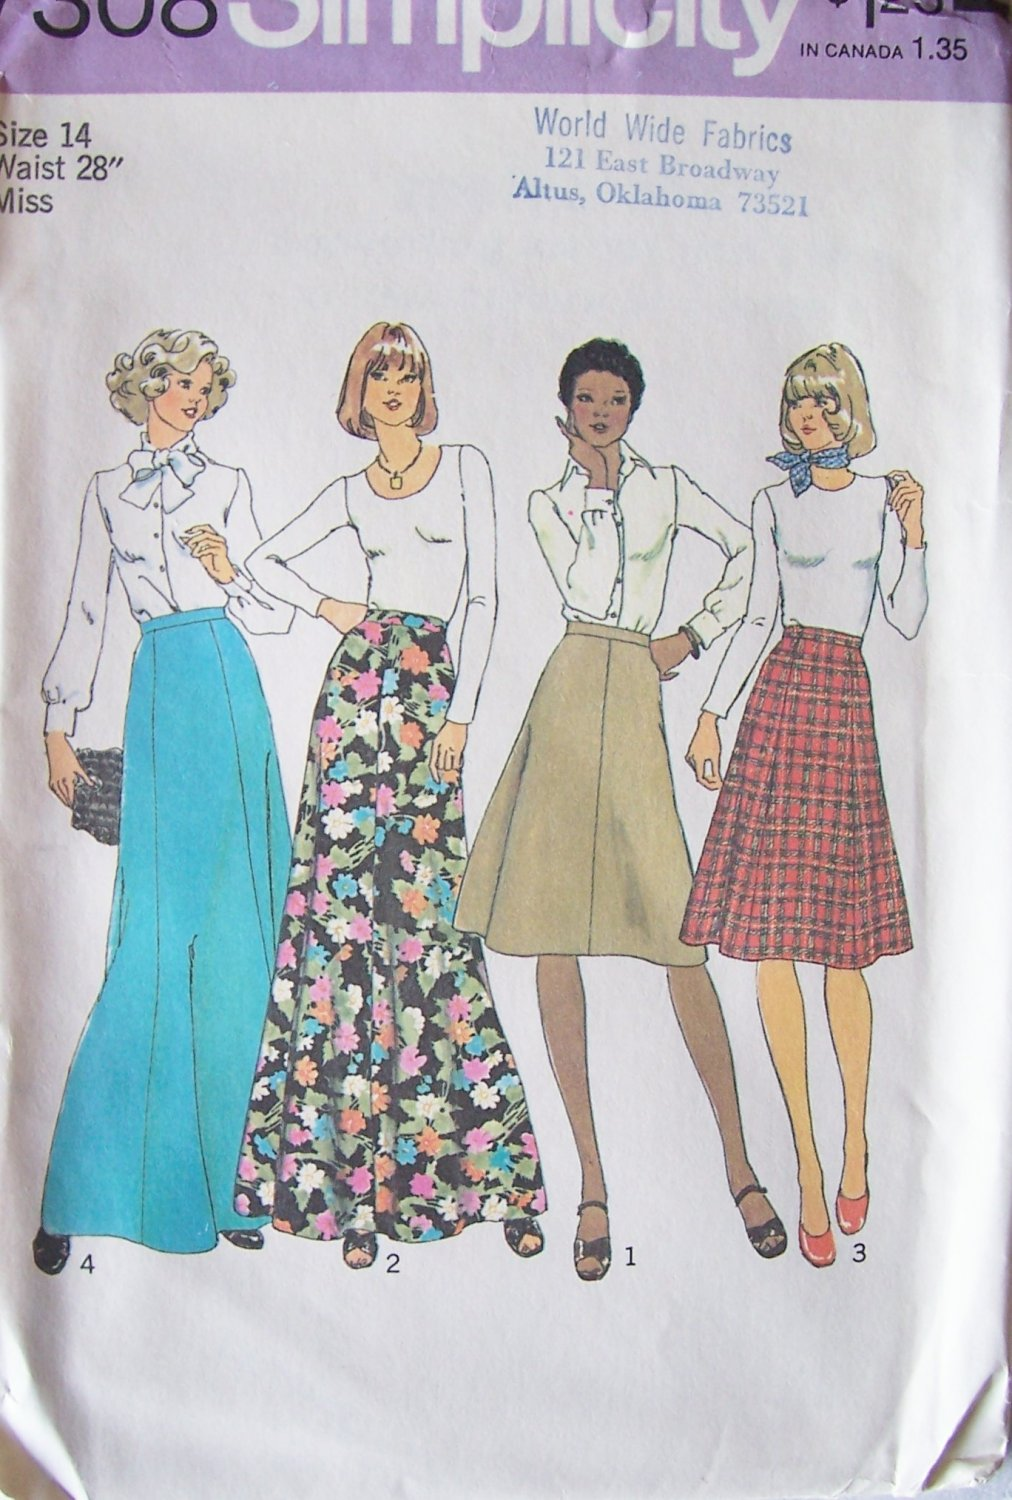 Vintage 70s Simplicity 7308 Gored Skirt Pattern Evening Length or Short Uncut Size 28 Waist